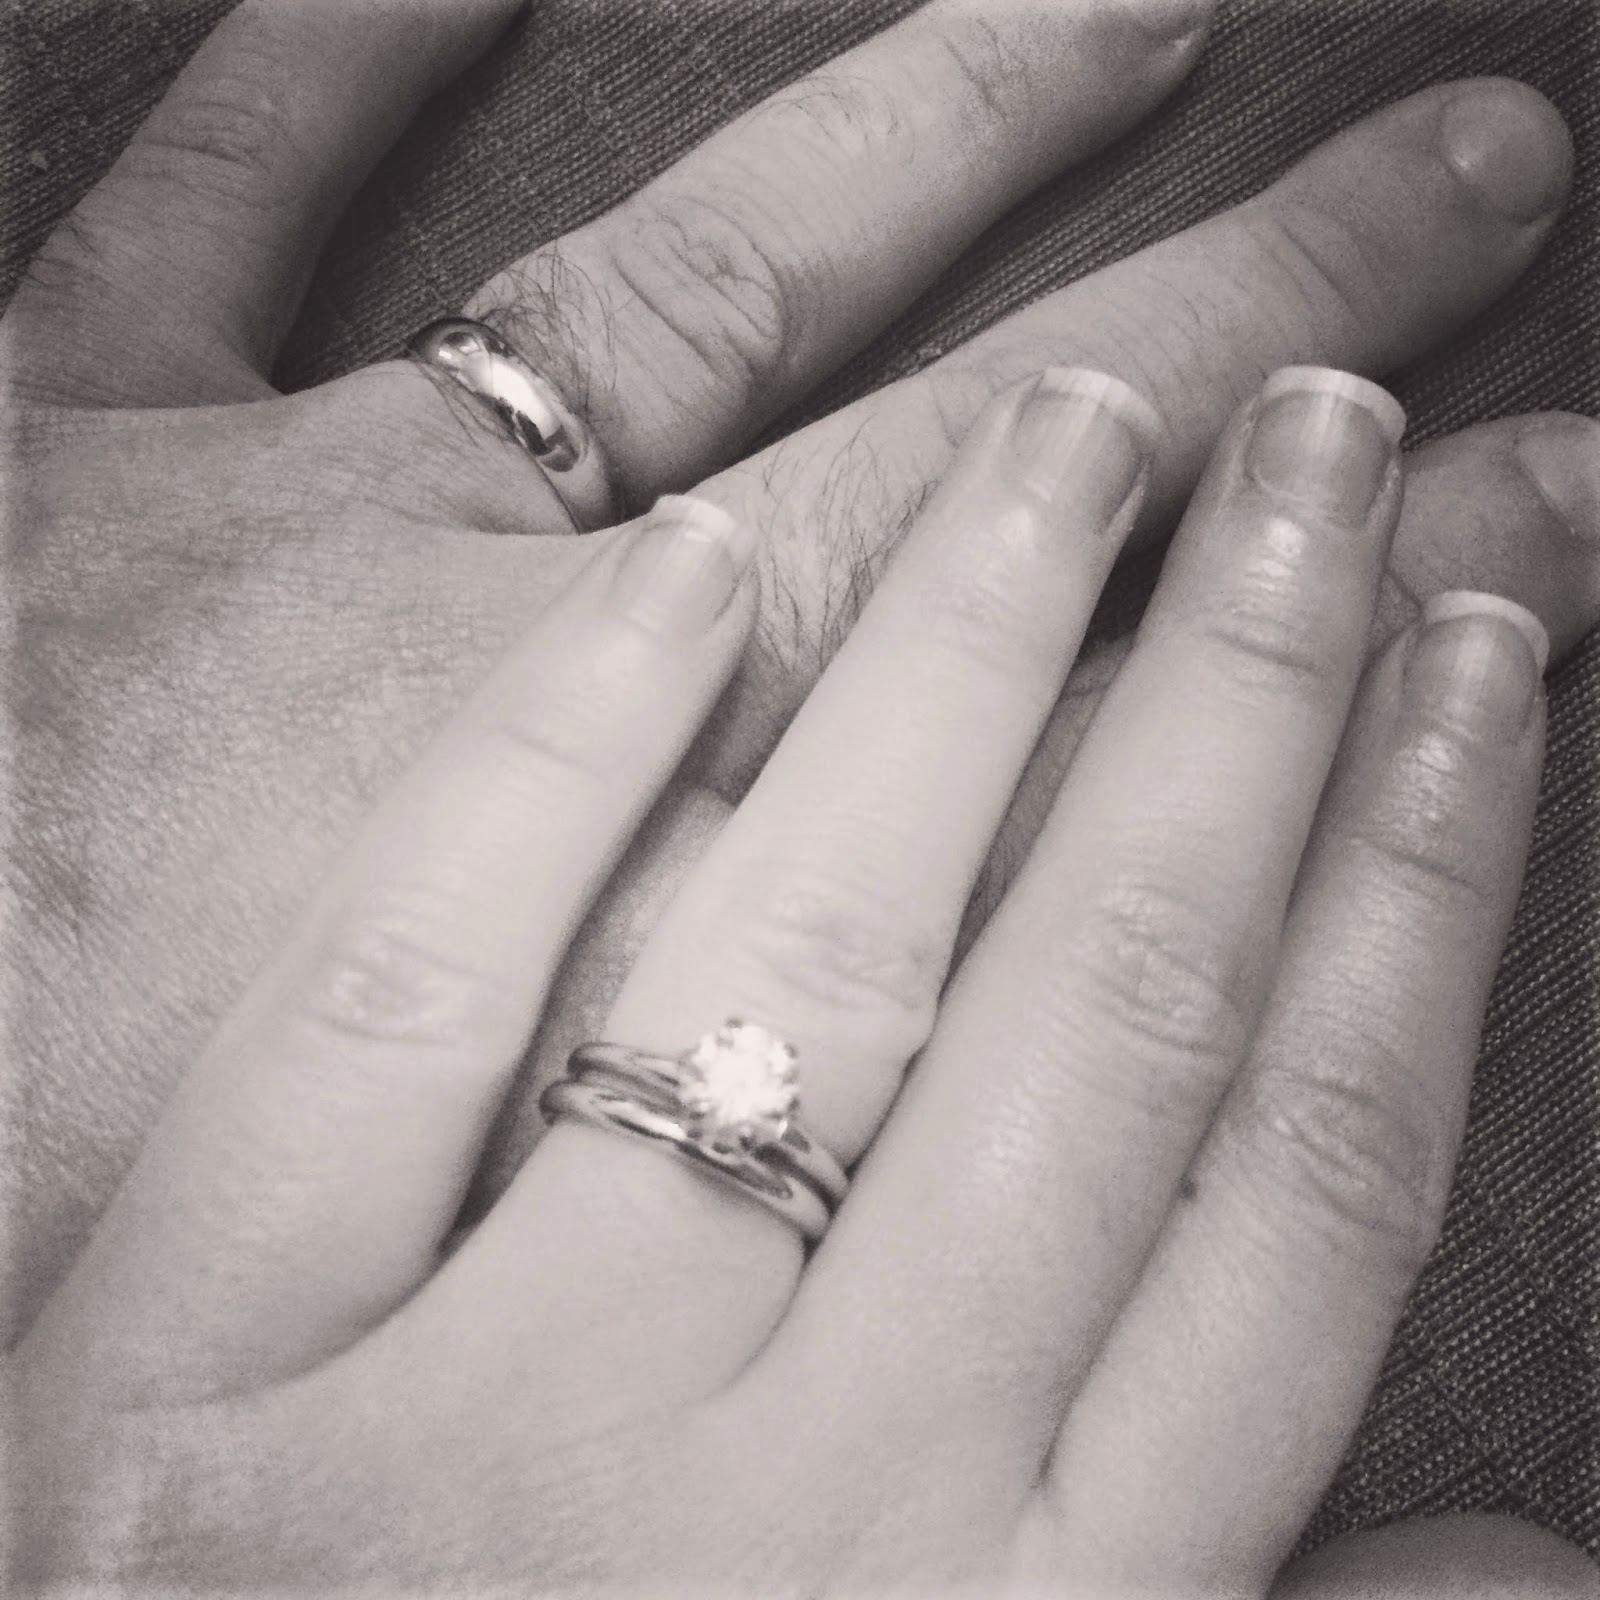 a picture of hands with wedding rings in black and white